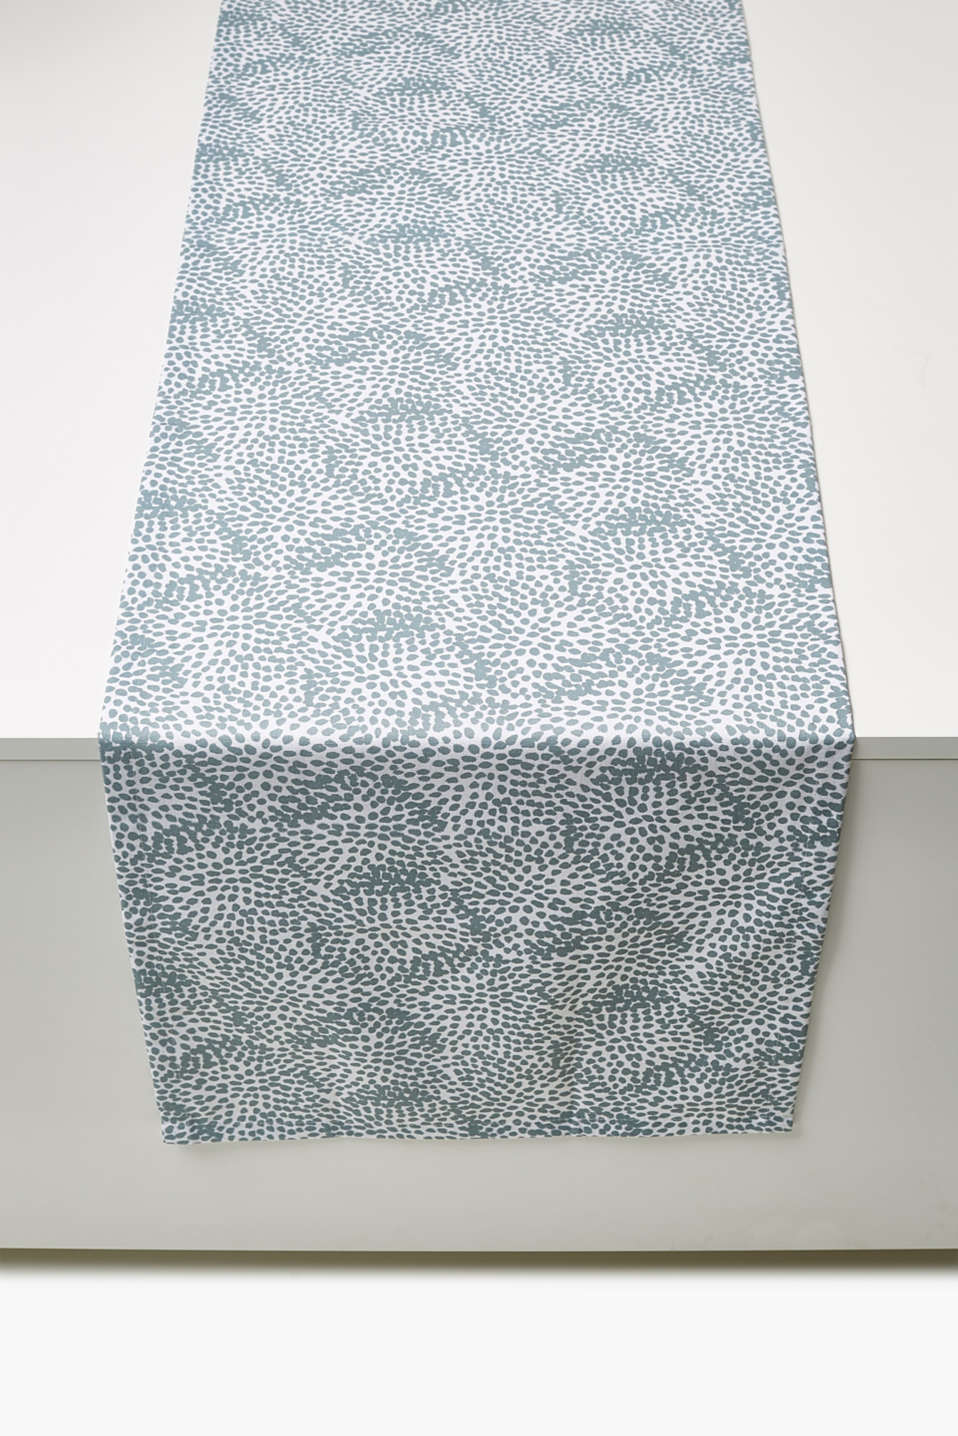 Esprit - Table runner with a digital print